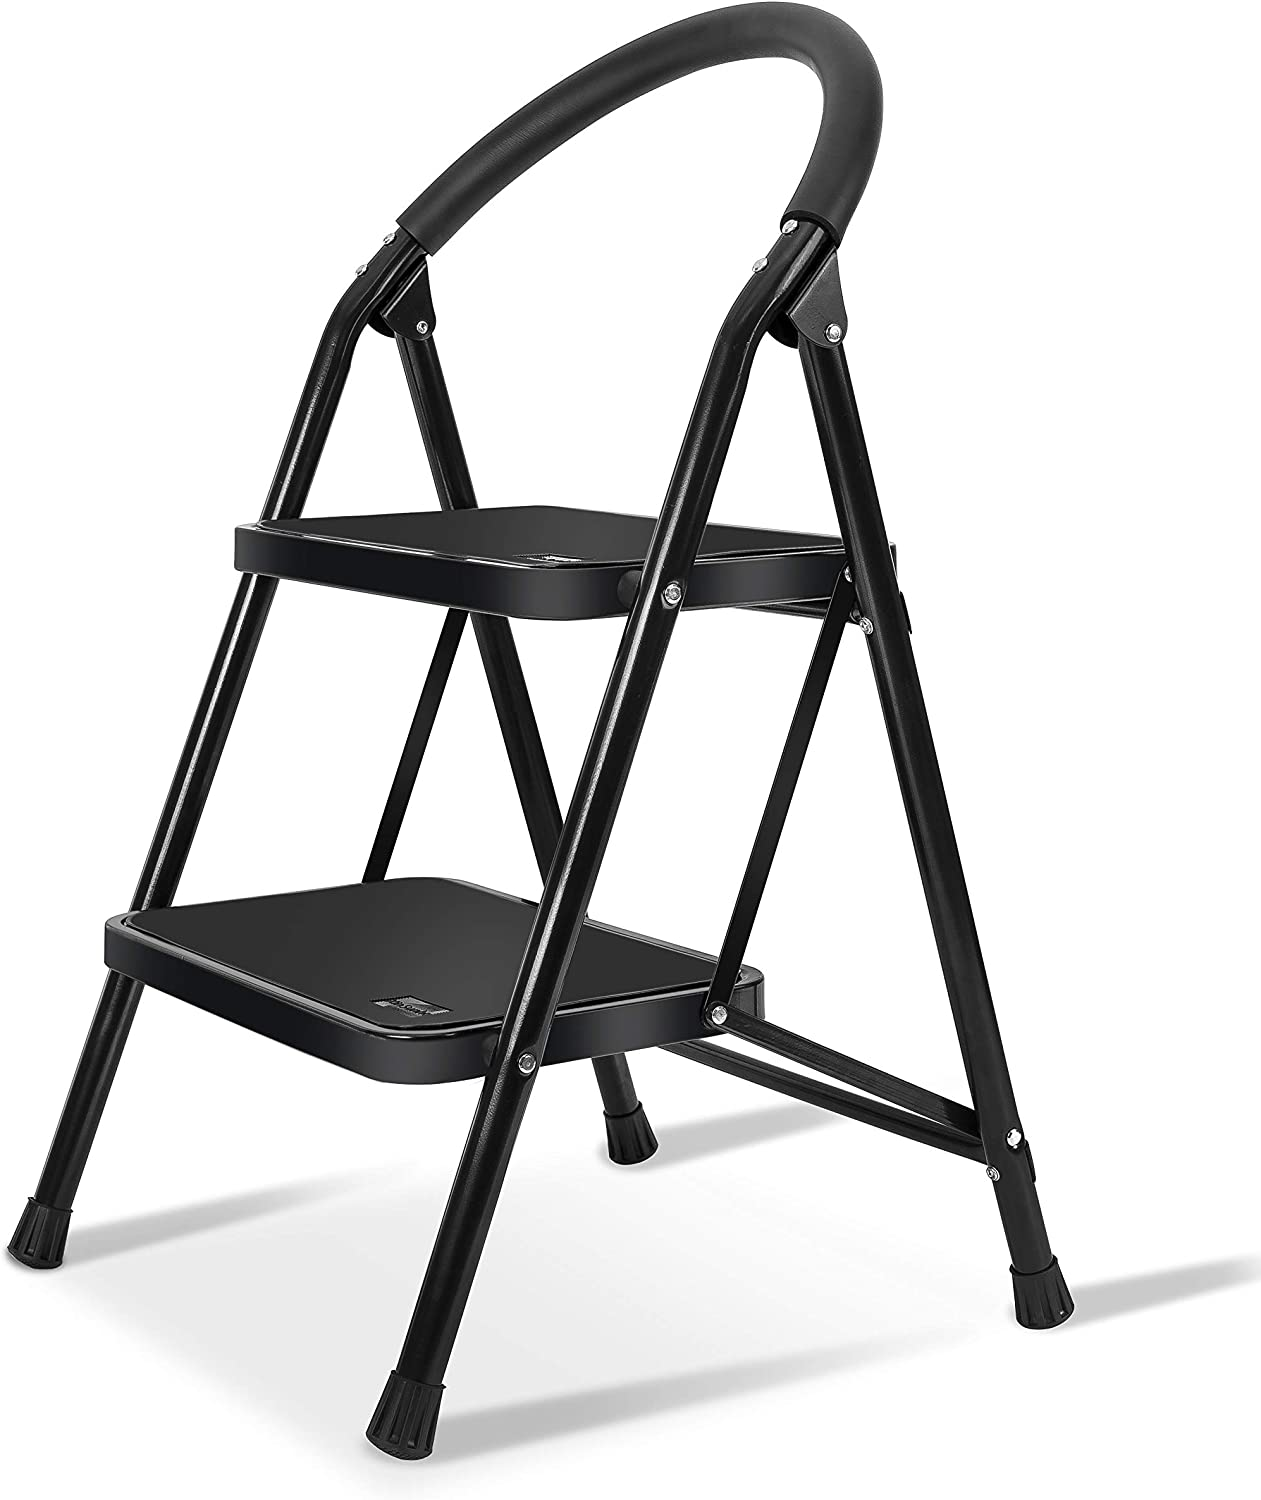 XinSunho 2 Step Ladder, Small Folding Sturdy Step Stool for Kitchen Home Closet, Wide Pedal 330lbs Heavy Duty Ladder for Adults Seniors, Black - -